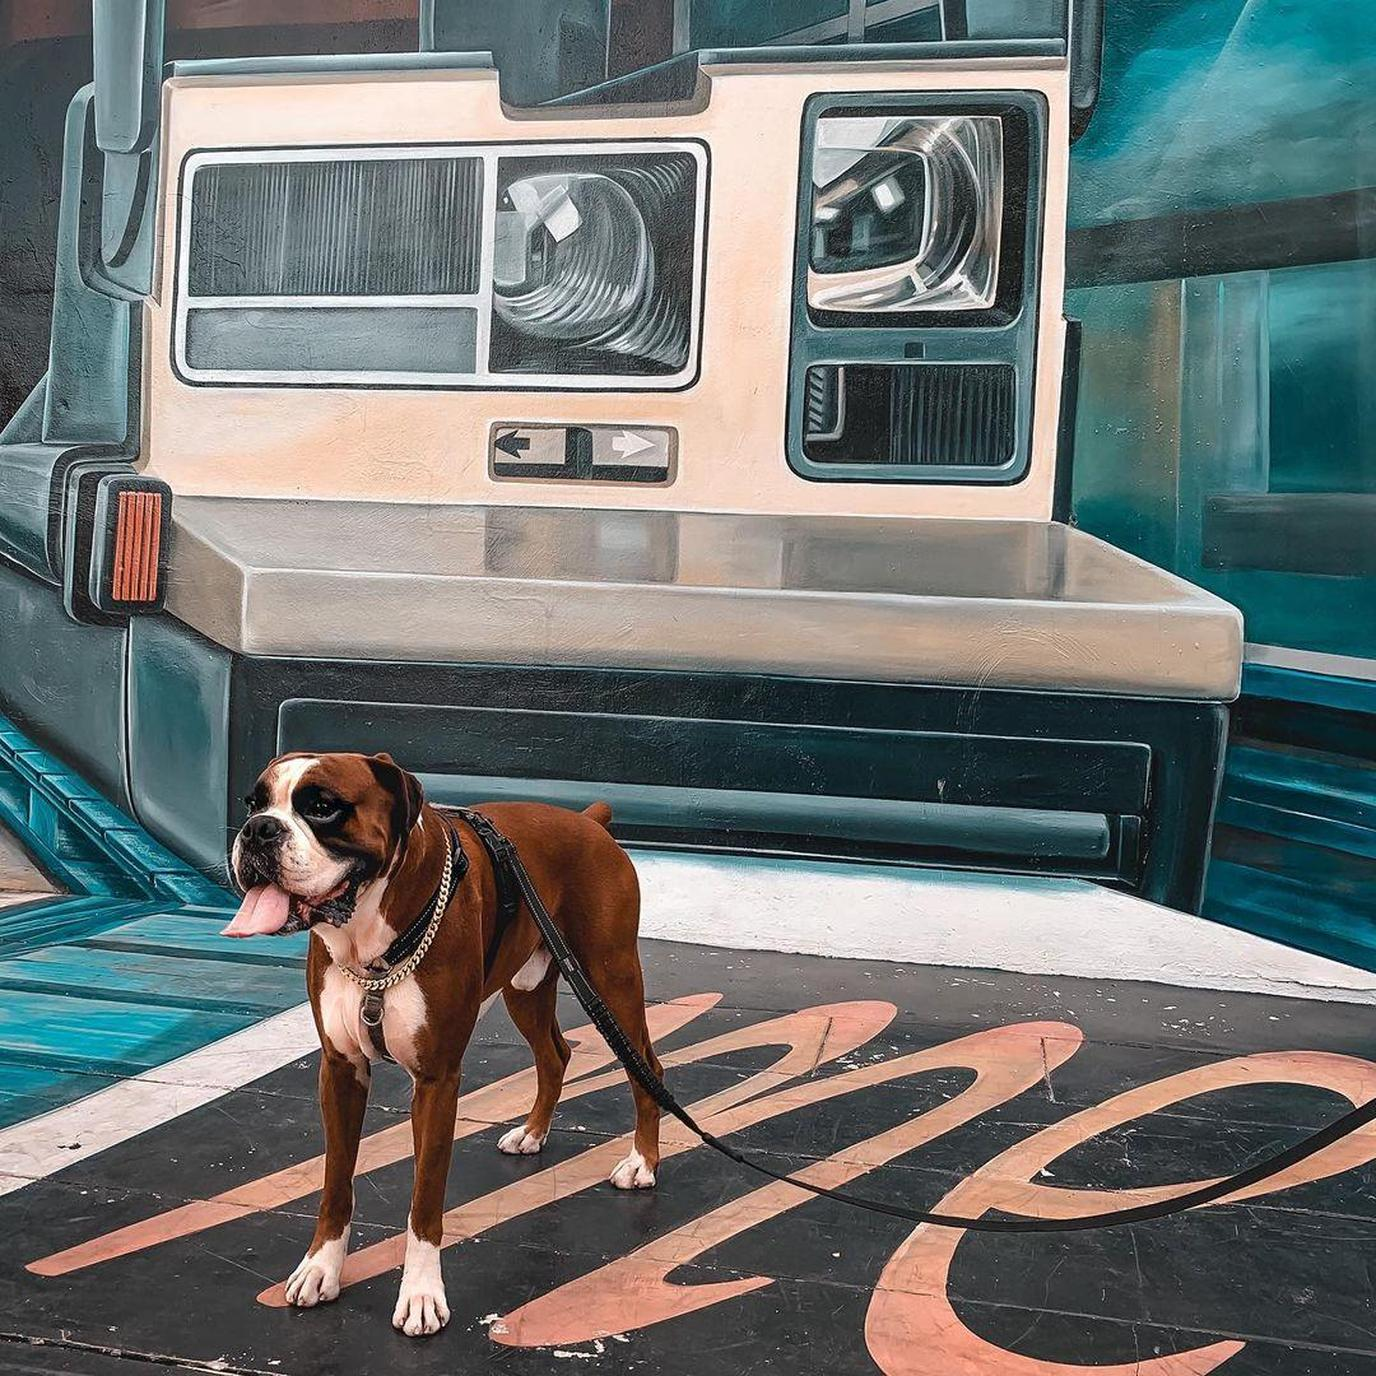 Visit Wynwood Walls to see famous murals with youru dog.